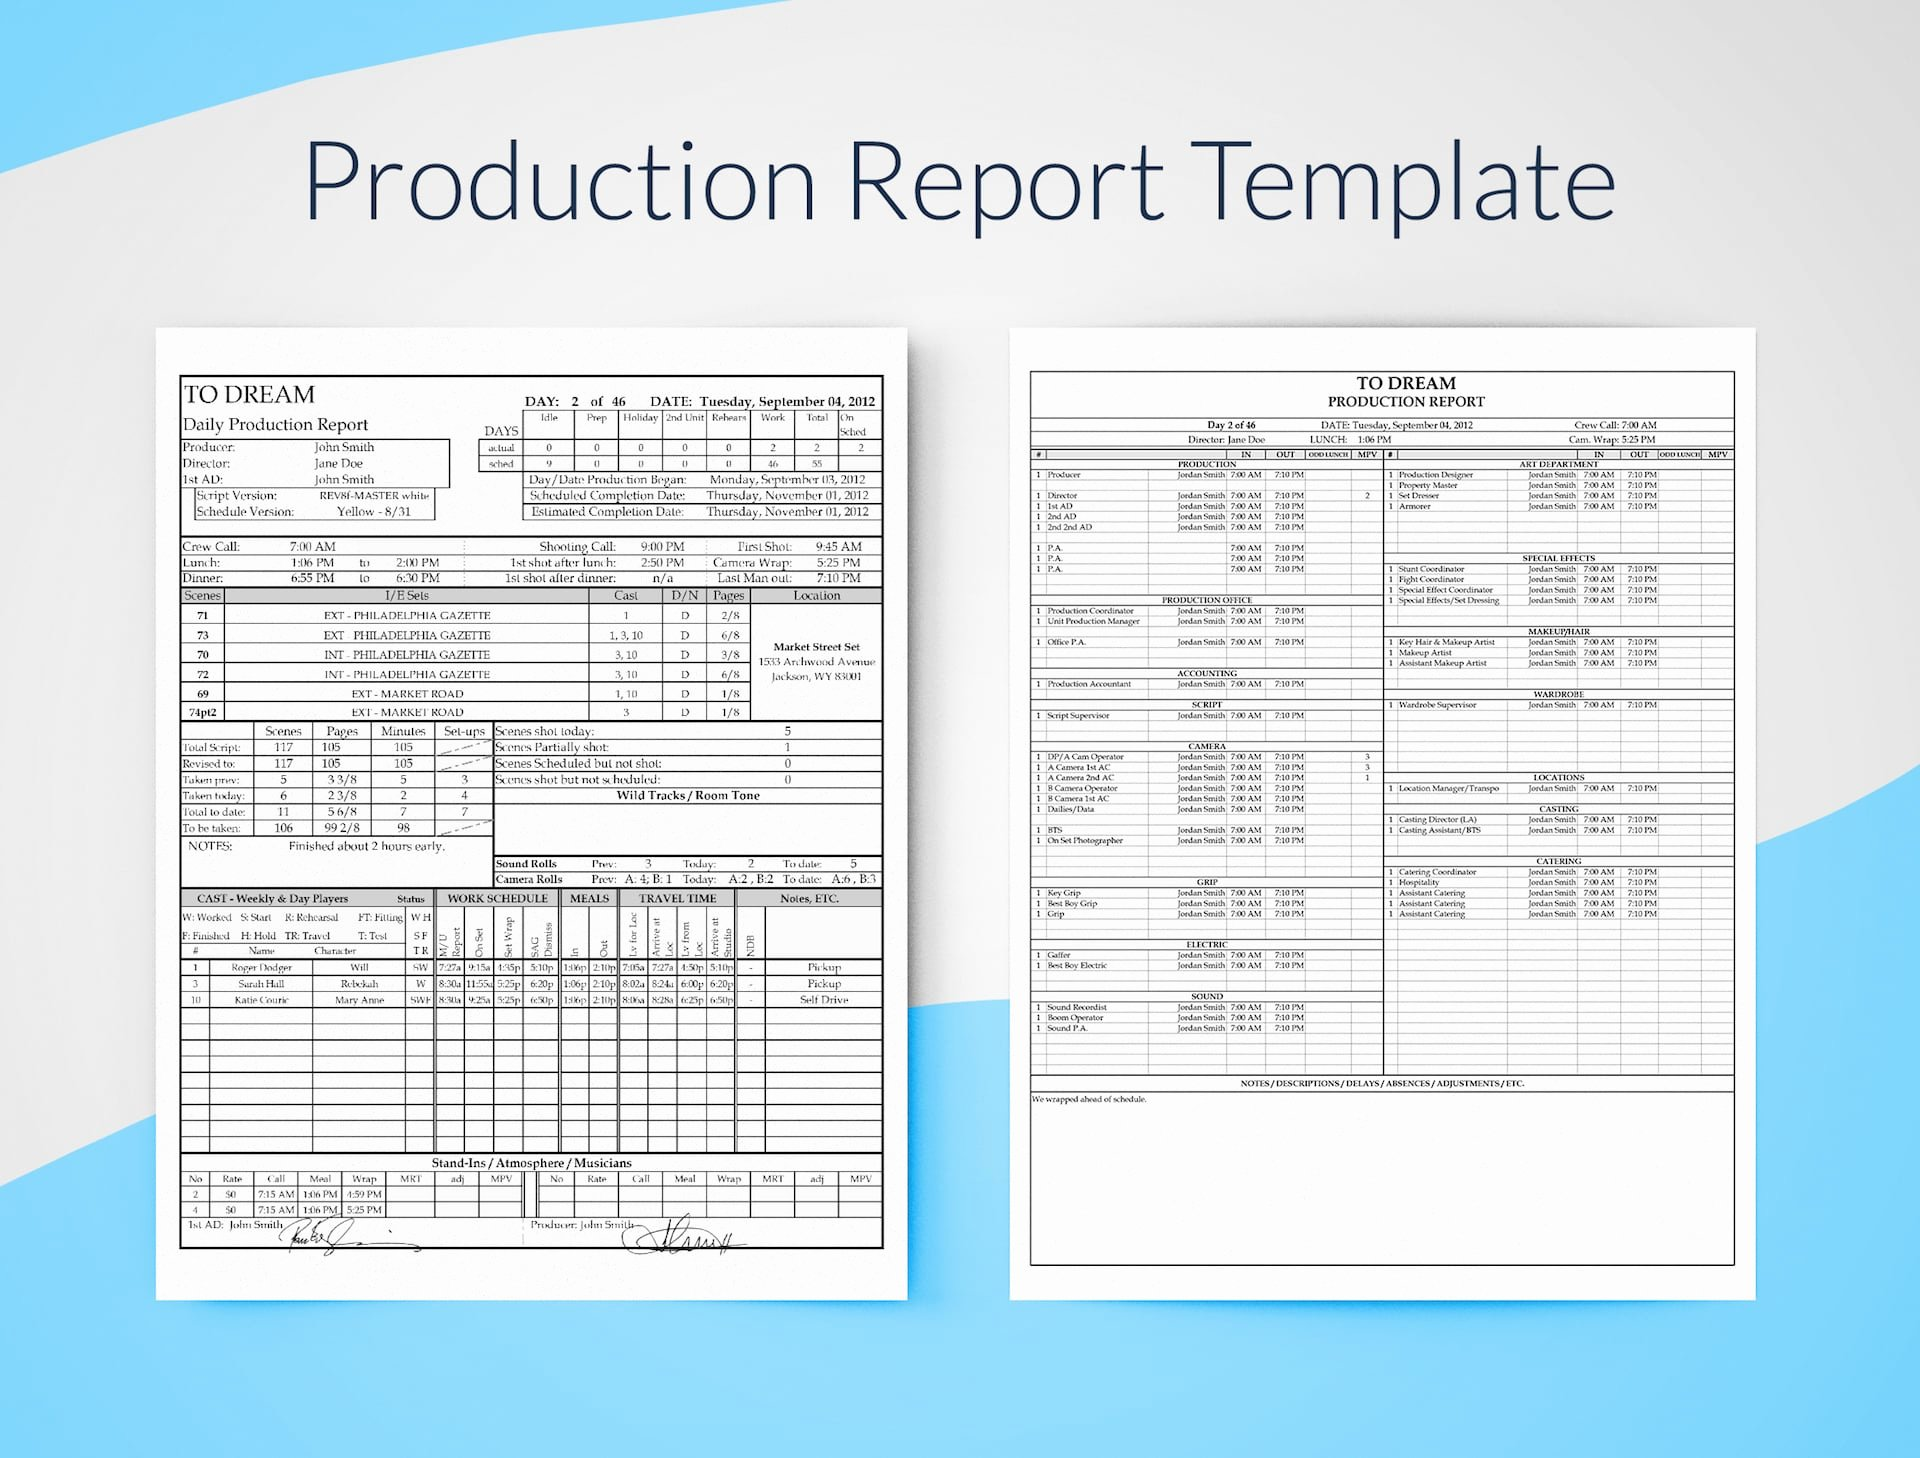 Daily Production Report Template Excel Awesome Daily Production Report Excel Template Free Download